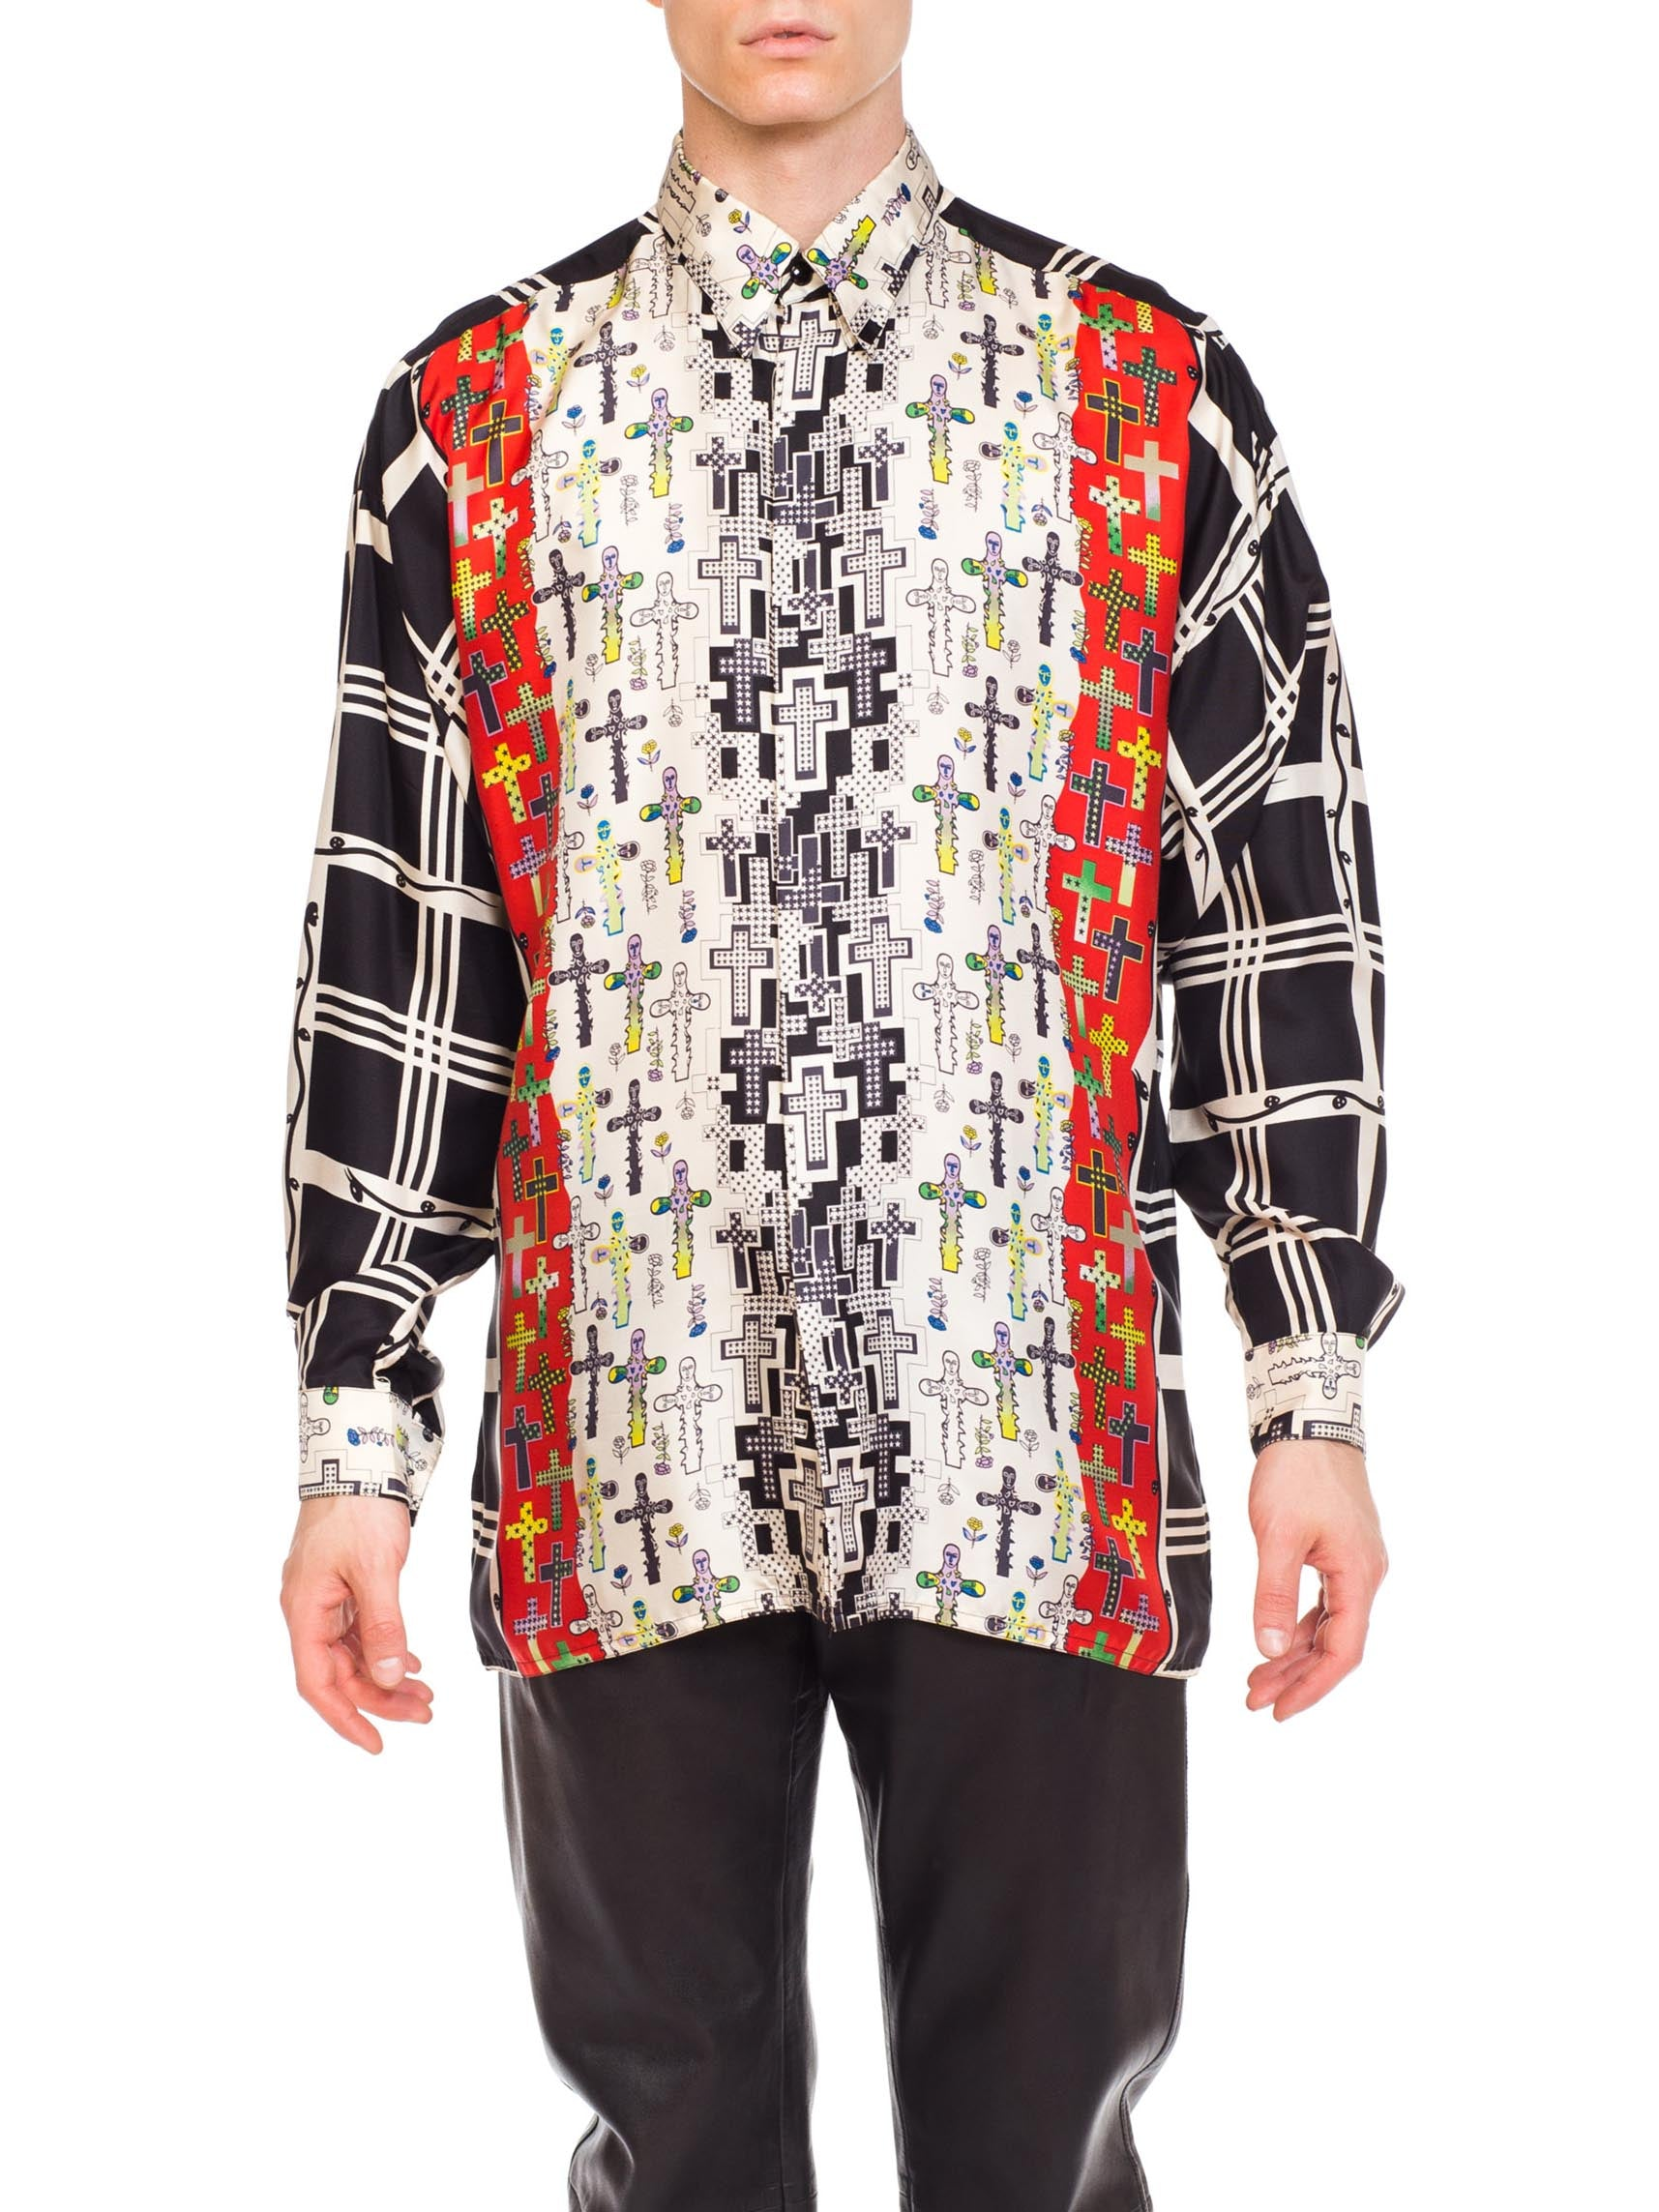 1990S Gianni Versace Black & White Silk Men's Illuminati Cross Shirt